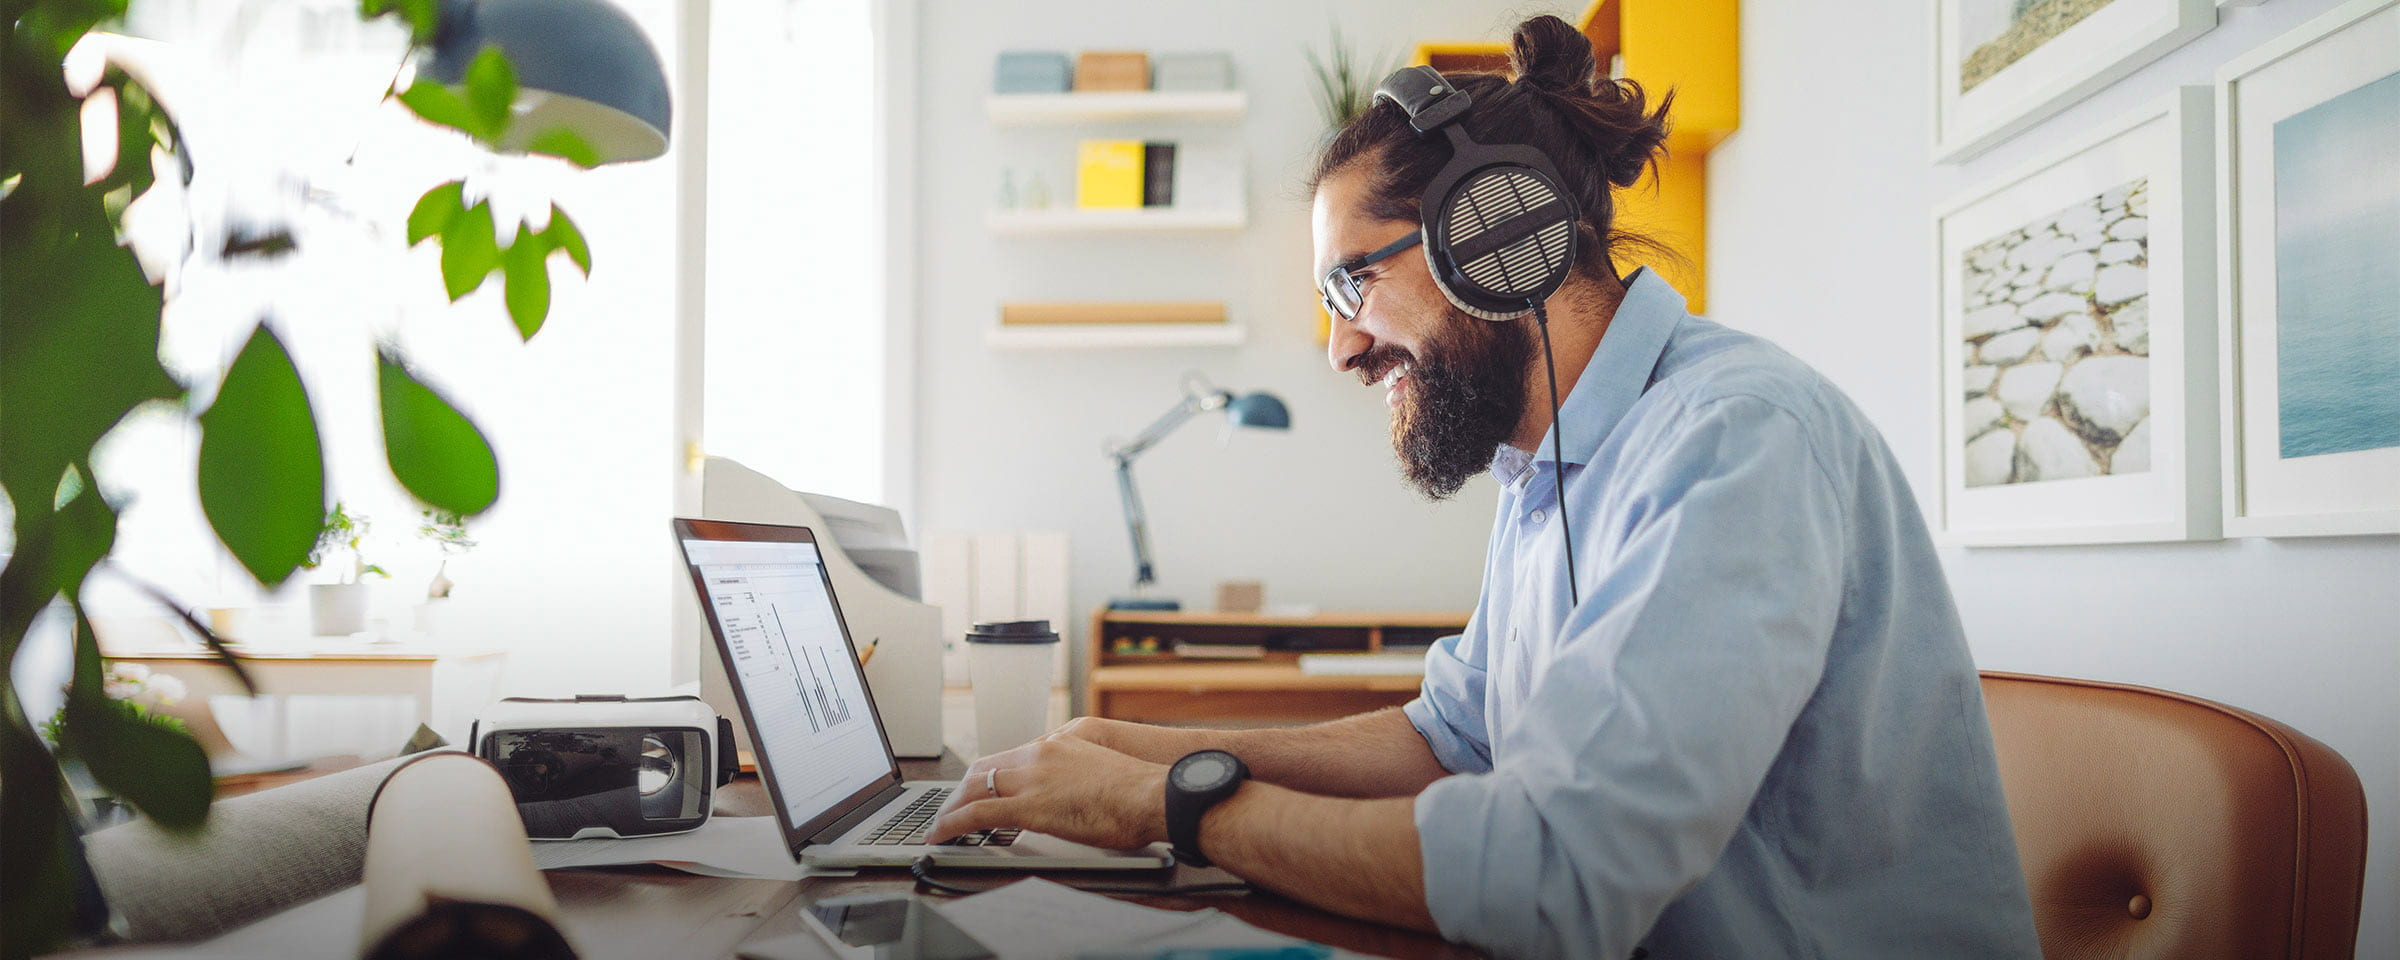 Man at laptop with headphones